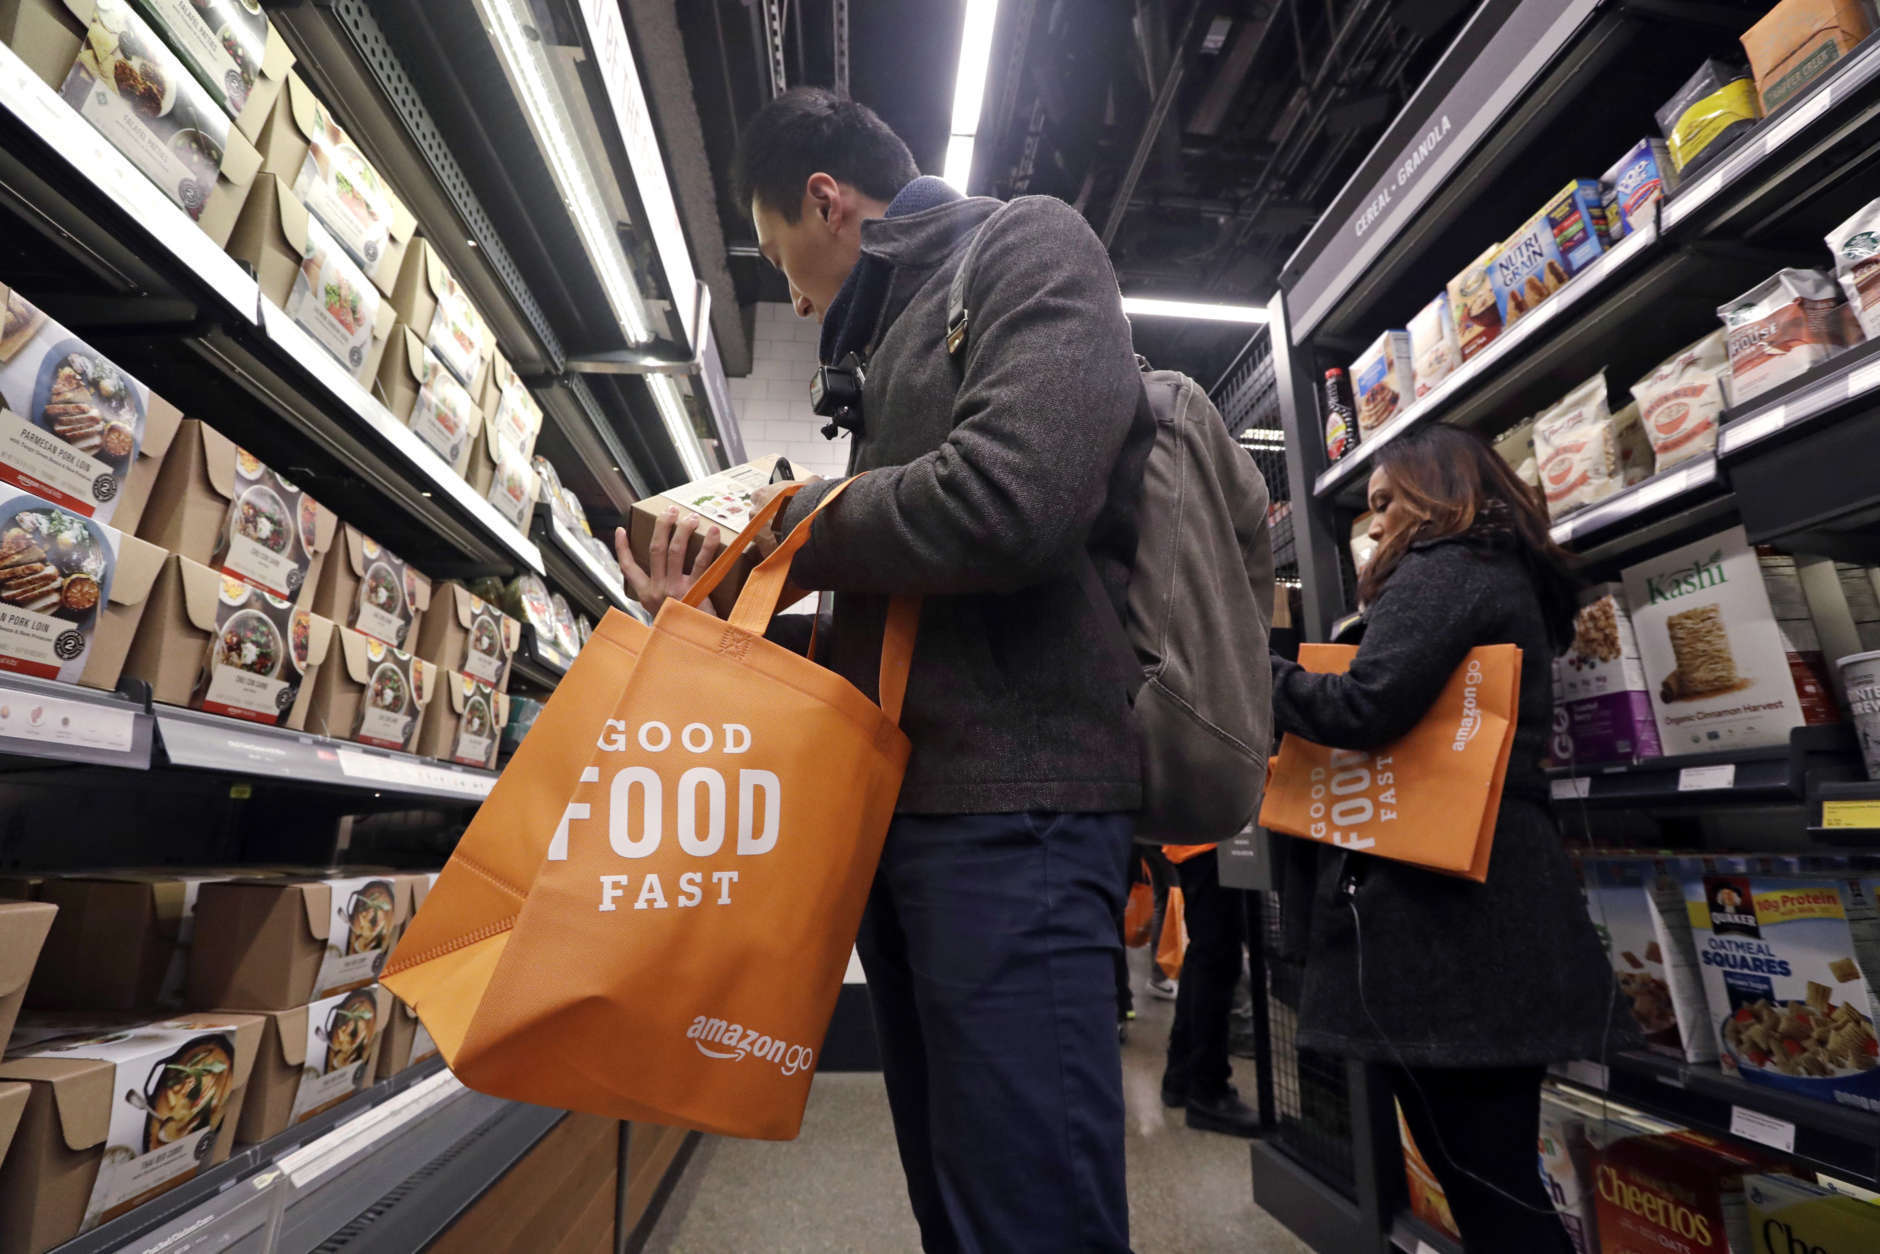 Customer Paul Fan shops at an Amazon Go store, Monday, Jan. 22, 2018, in Seattle. The store on the bottom floor of the company's Seattle headquarters allows shoppers to scan their smartphone with the Amazon Go app at a turnstile, pick out the items they want and leave. The online retail giant can tell what people have purchased and automatically charges their Amazon account. (AP Photo/Elaine Thompson)